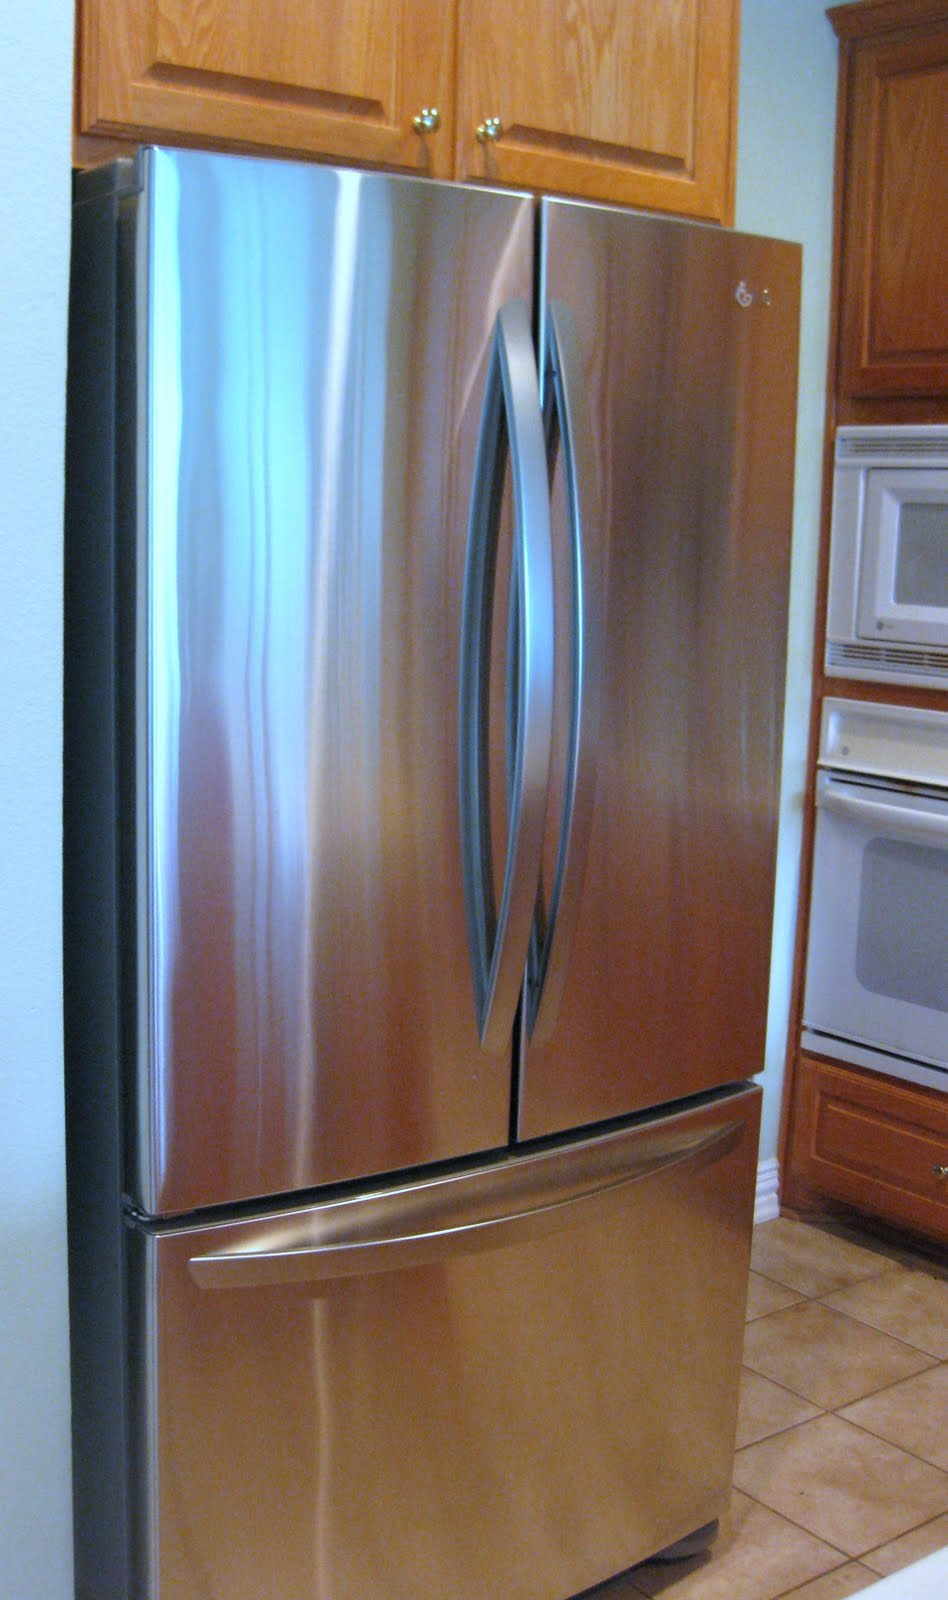 Most Reliable Refrigerator >> Ultra cool Fun: Determining Top 10 Refrigerators: Whirlpool Gold French Door Refrigerator GX2FHDXVY